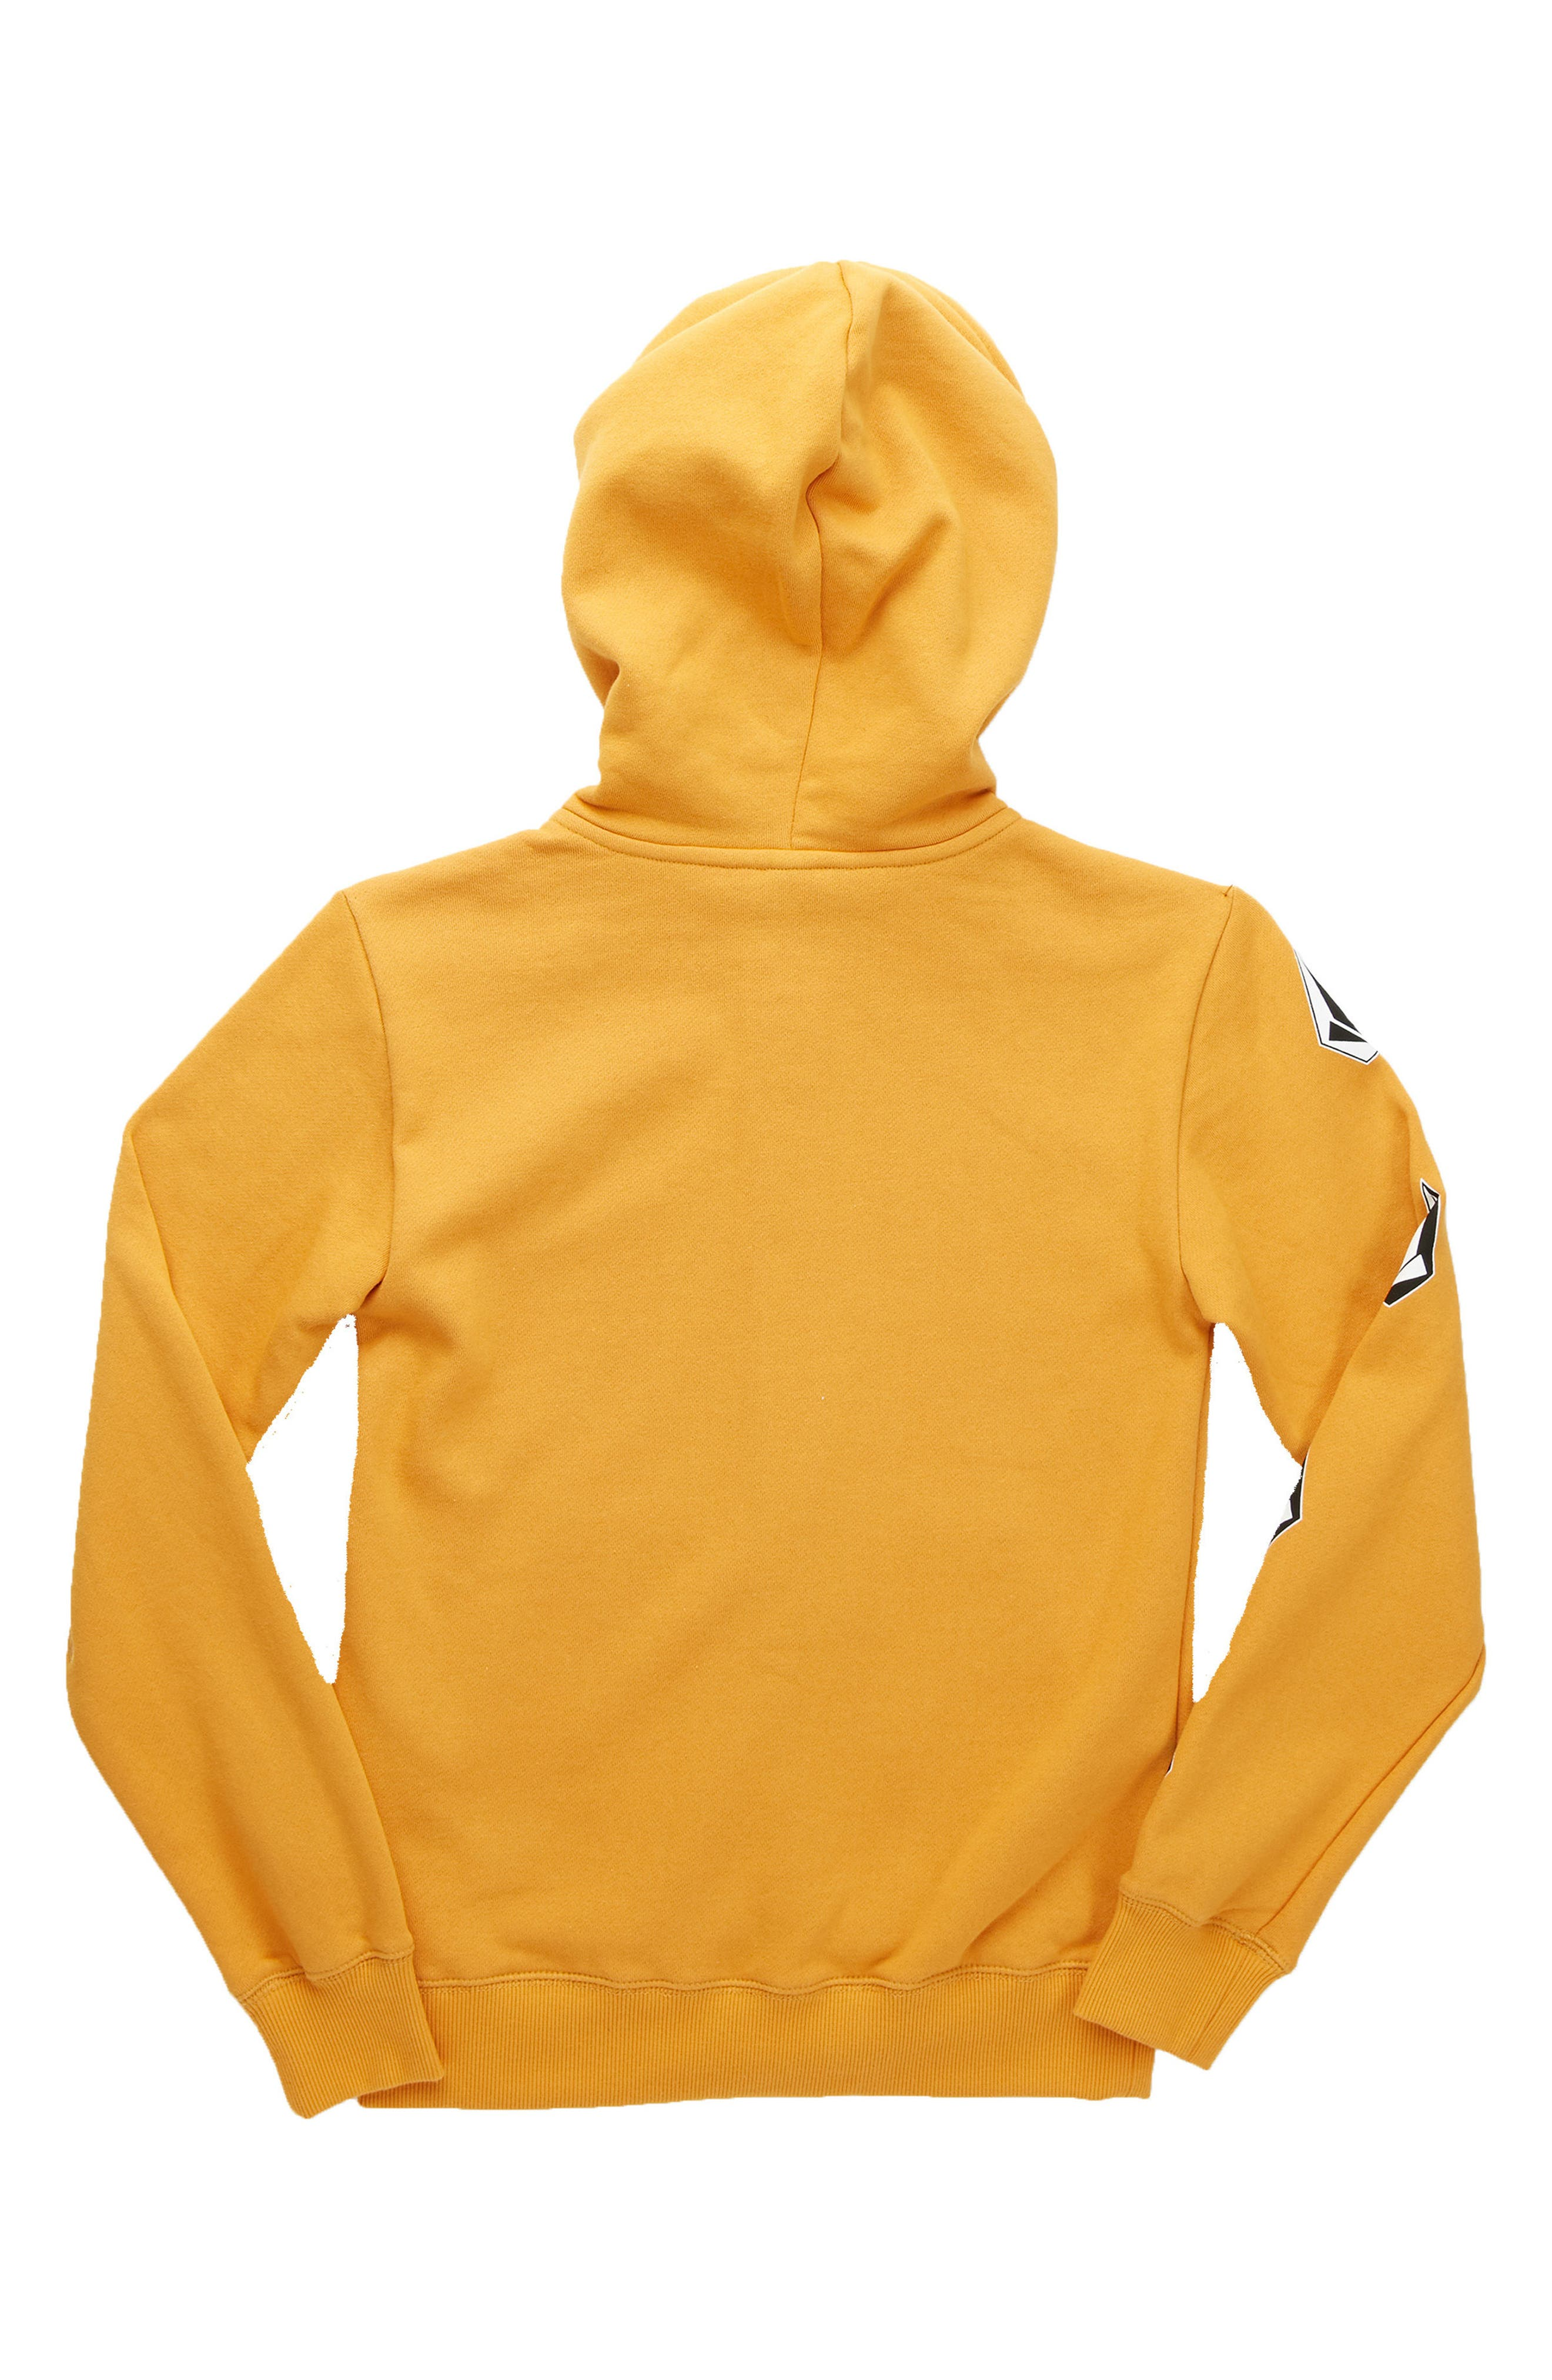 Supply Stone Graphic Zip Hoodie,                             Alternate thumbnail 2, color,                             Gold Vintage